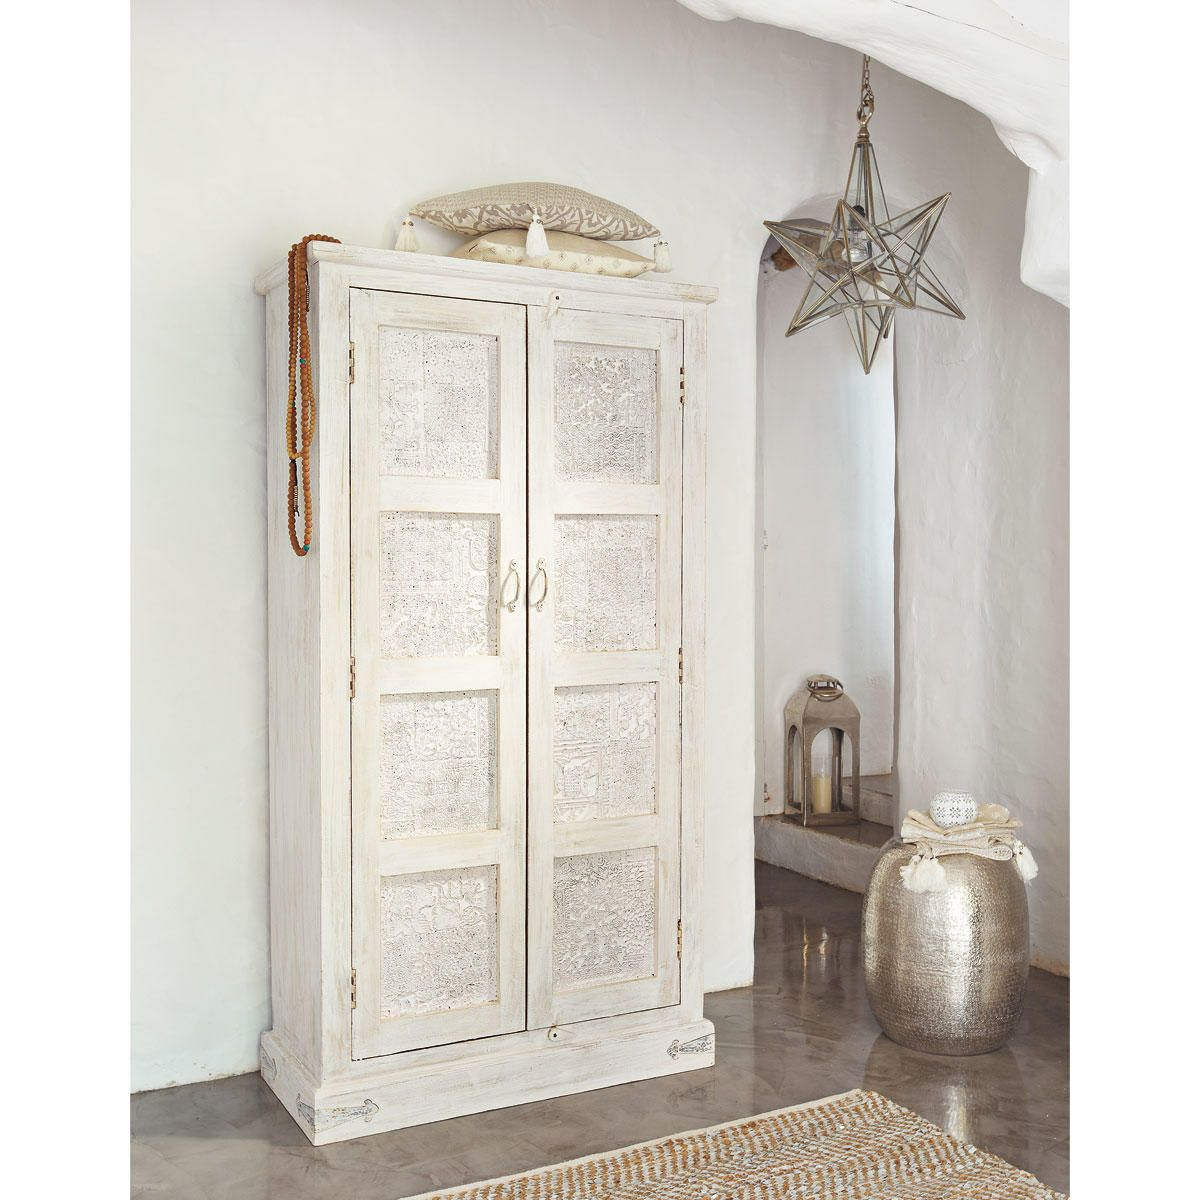 armoire en manguier blanche effet vieilli l 90 cm deco salon armoires and vintage shabby chic. Black Bedroom Furniture Sets. Home Design Ideas